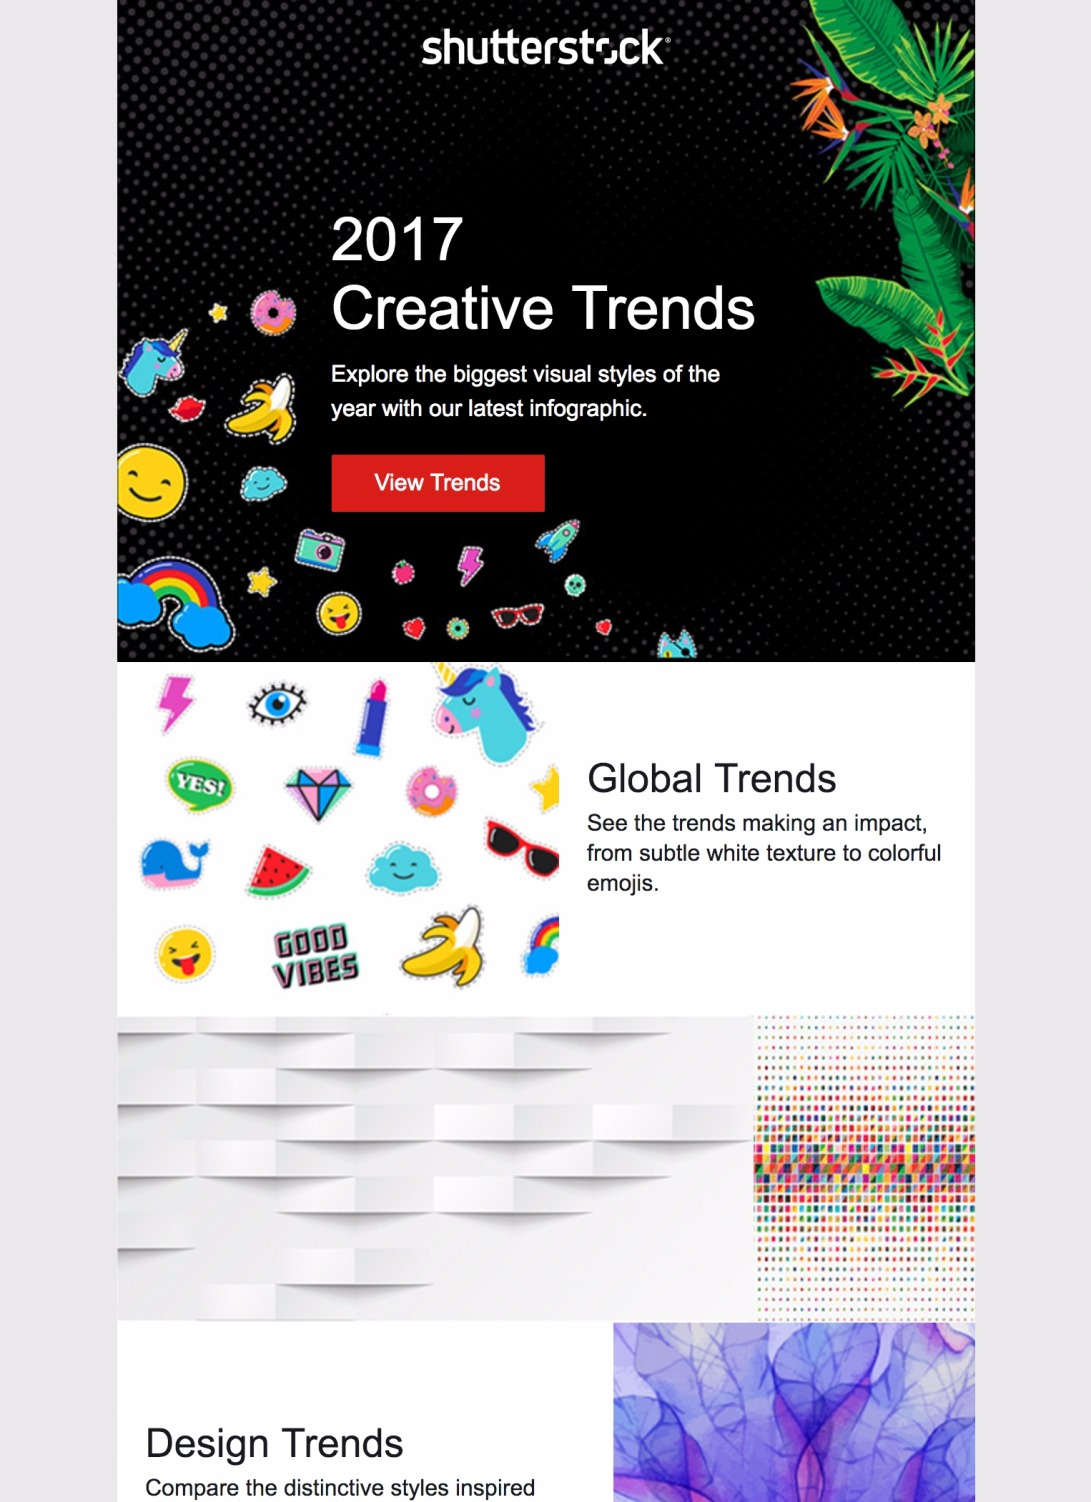 Discover our top creative trends of 2017